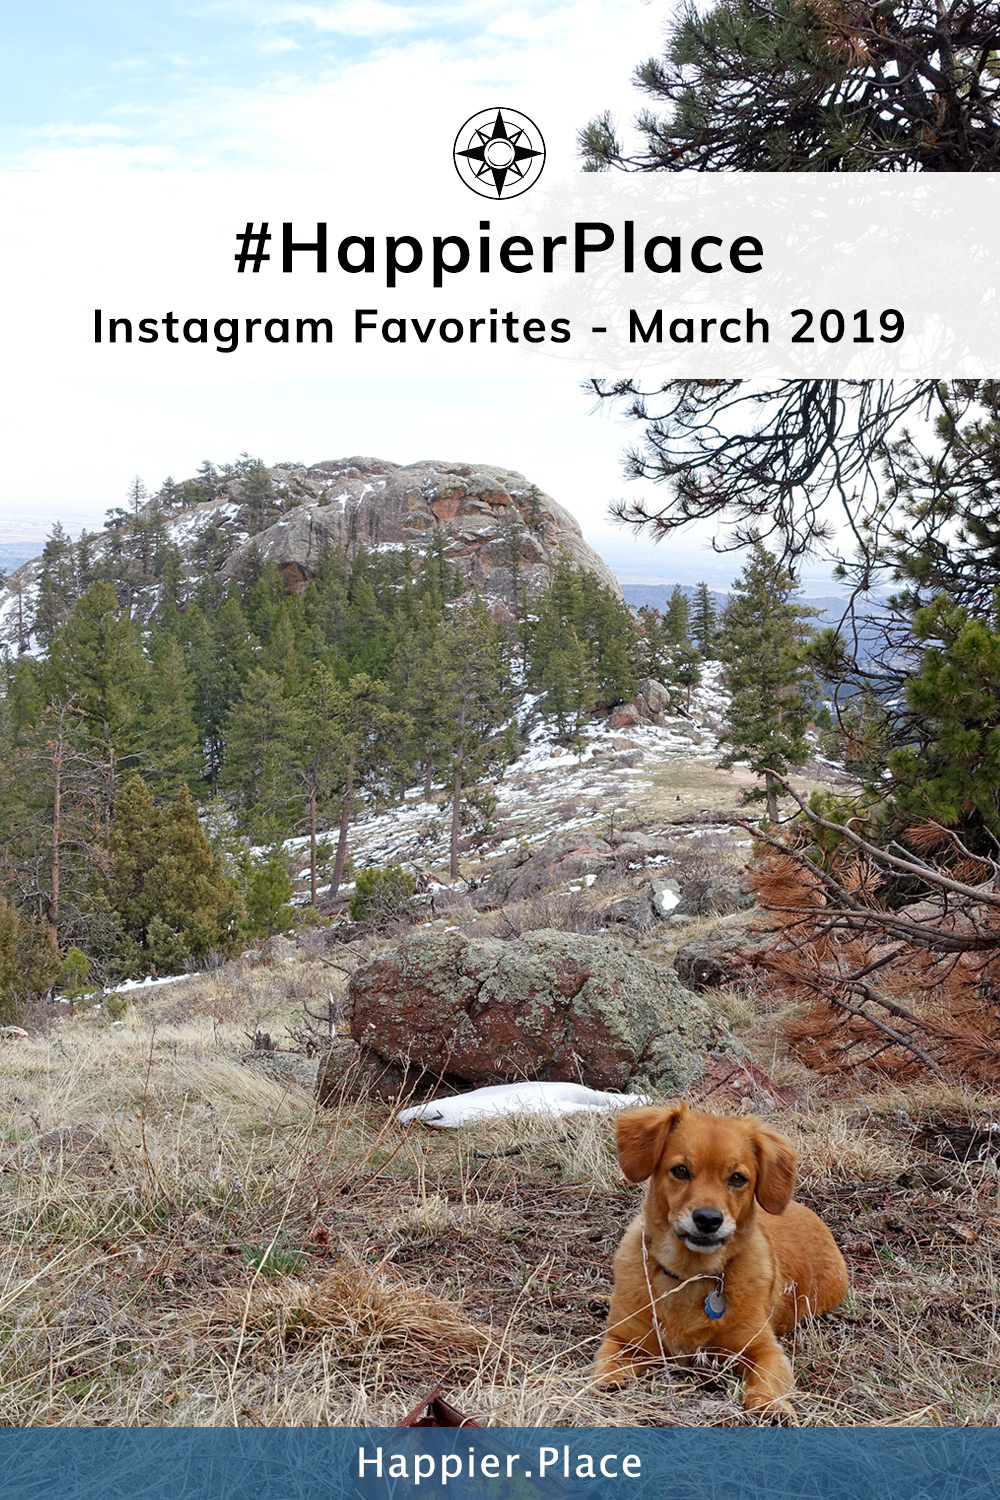 #HappierPlace Instagram Favorites: March 2019